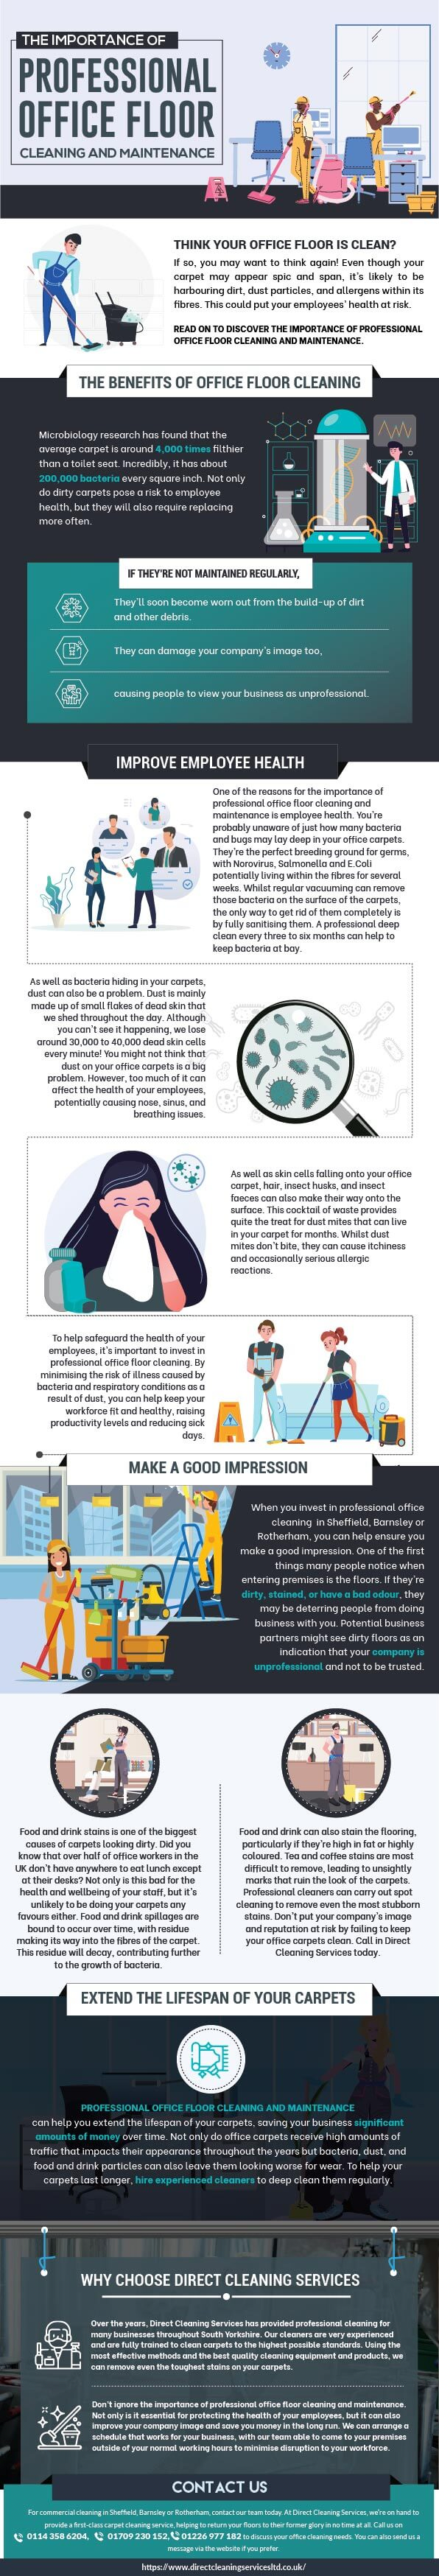 THE IMPORTANCE OF PROFESSIONAL OFFICE FLOOR CLEANING AND MAINTENANCE [INFOGRAPHIC]